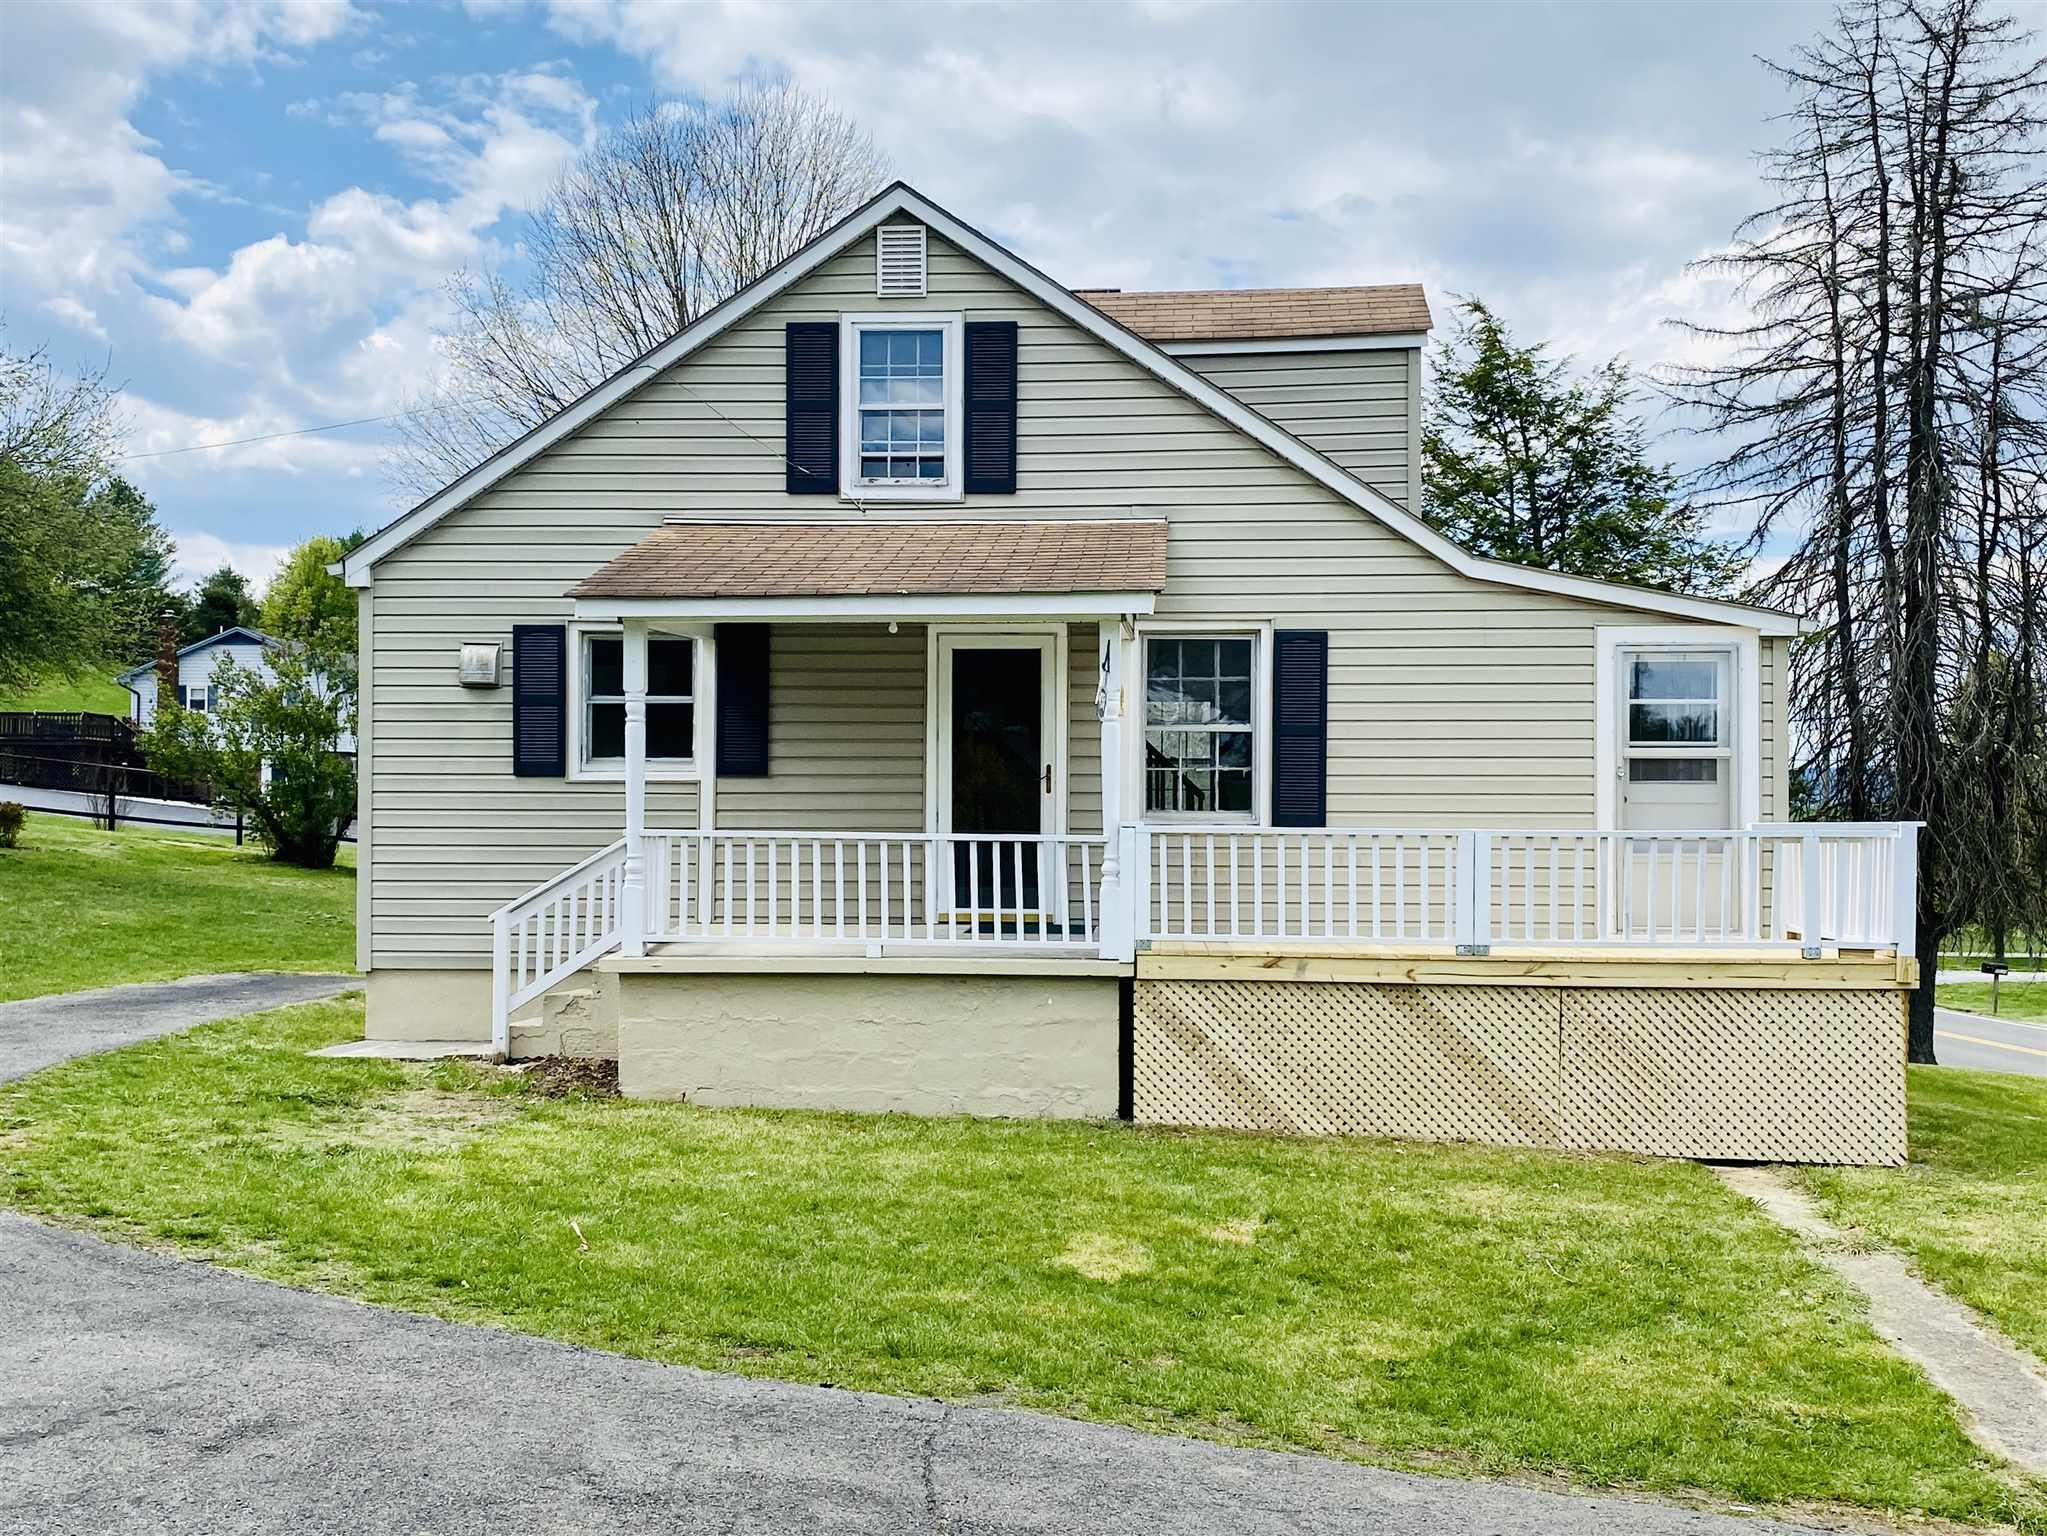 Ready to make yours. Take a look at this great new listing. Freshly painted inside and out. Updated kitchen. Real hardwood flooring. The lot is nice with a paved drive, the foundation is block, nice porches, and large open spaces on the inside. Nice yard for kids, pets or fun summer activities. Double detached garage is a plus for those looking for a workshop, she-shed or the hobby enthusiast.